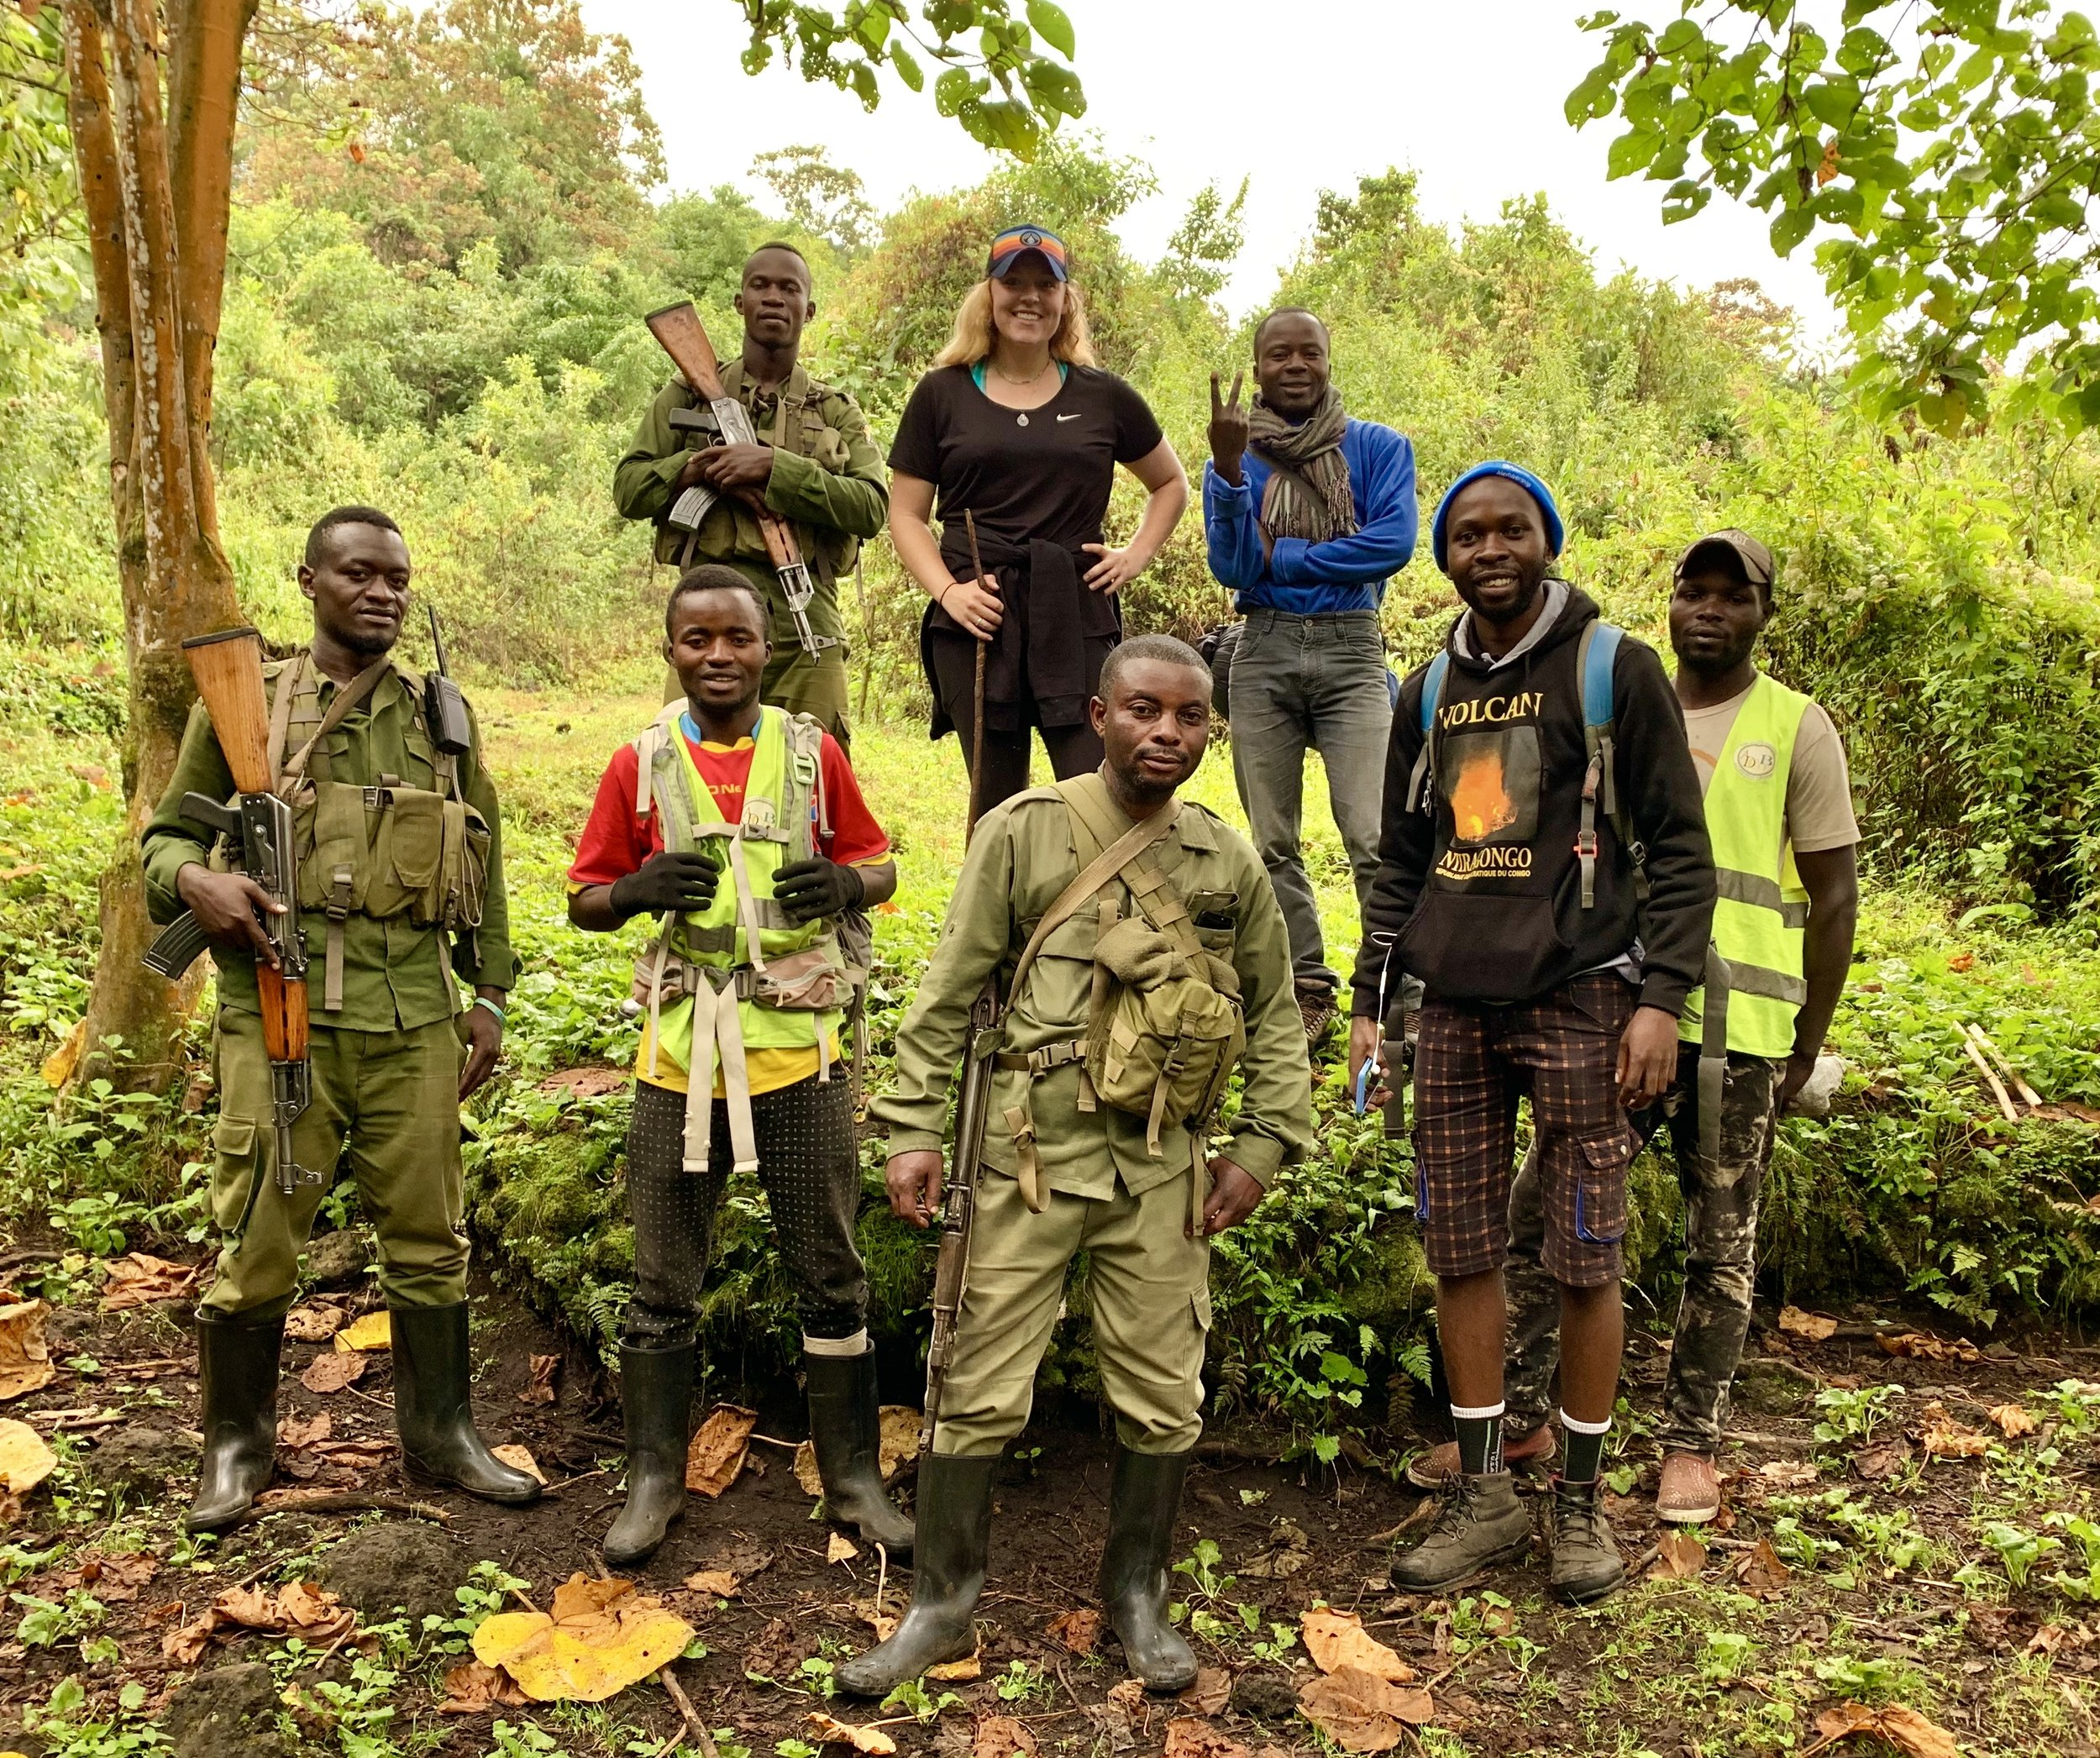 Of course we had to get a team picture. My guides, rangers, porters, and cook were amazing!